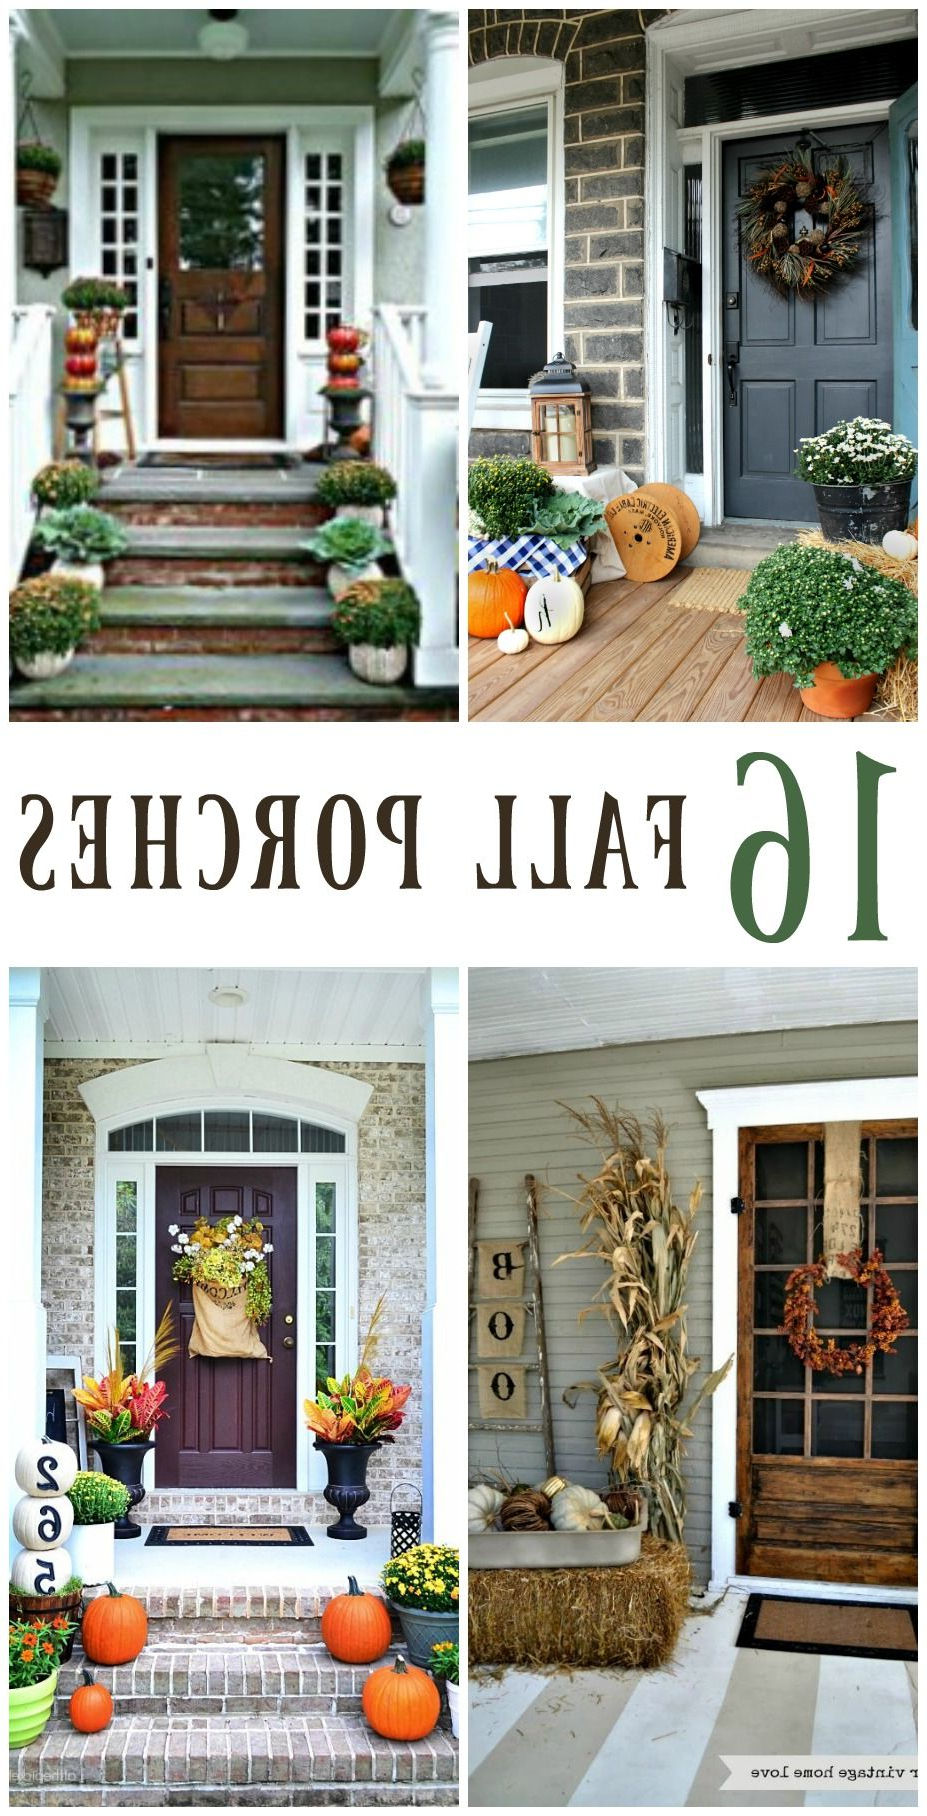 16 Inspiring Fall Porch Decorating Ideas With Images